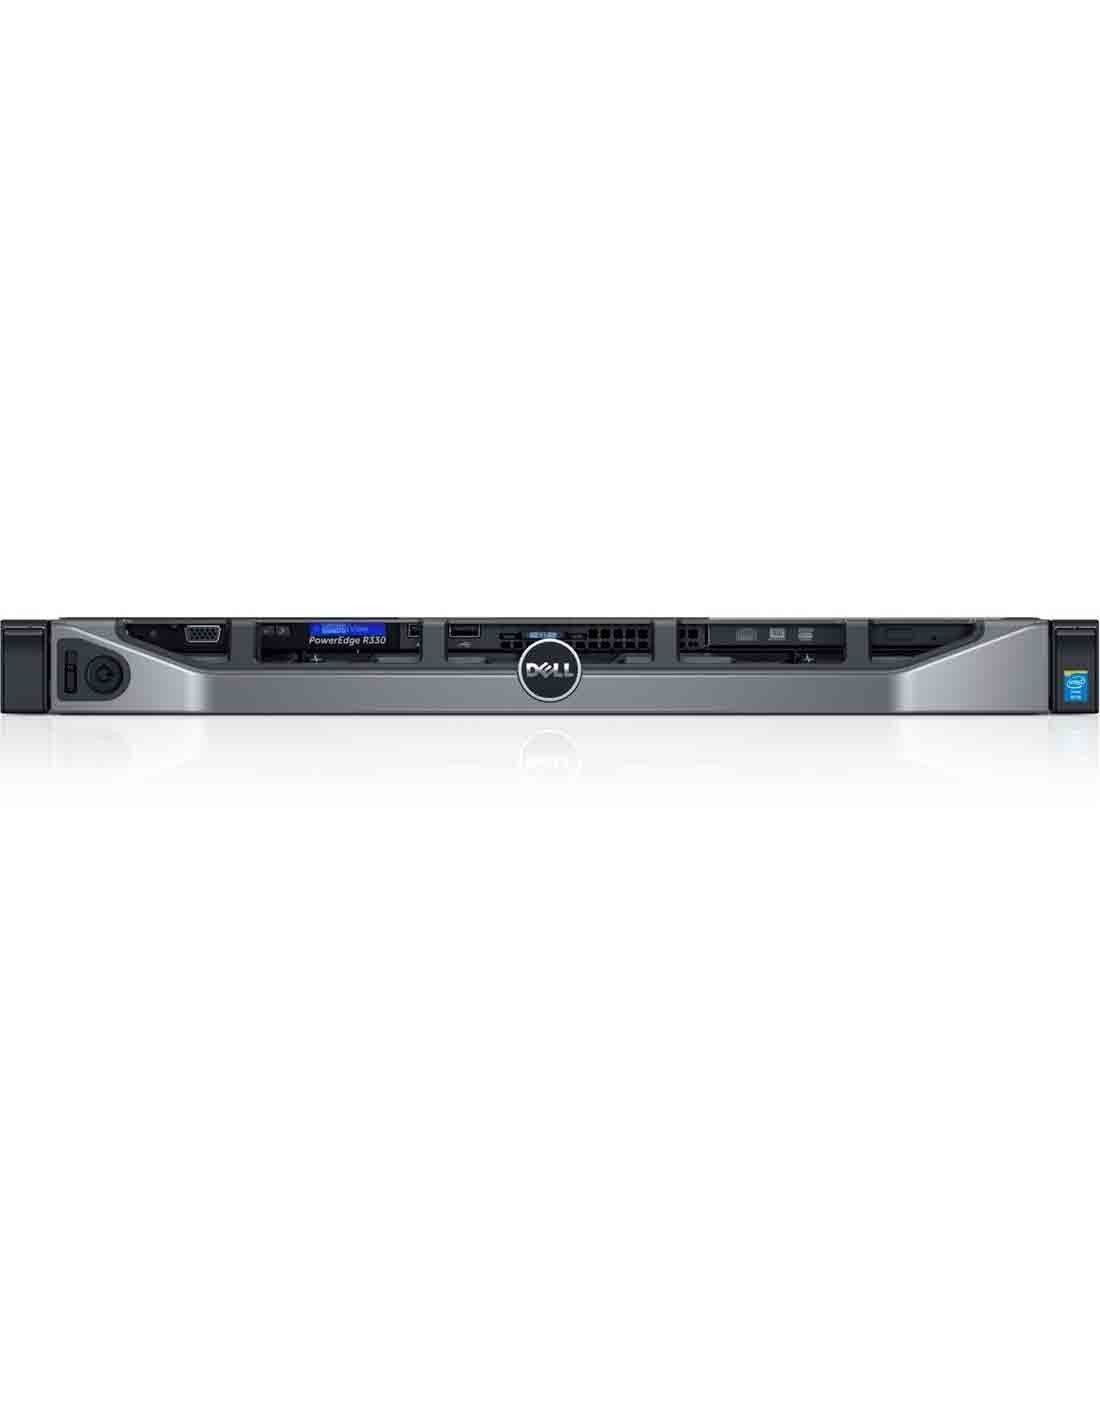 Dell PowerEdge R330 E3-1220v5 Rack Server at a Cheap Price in the Middle East